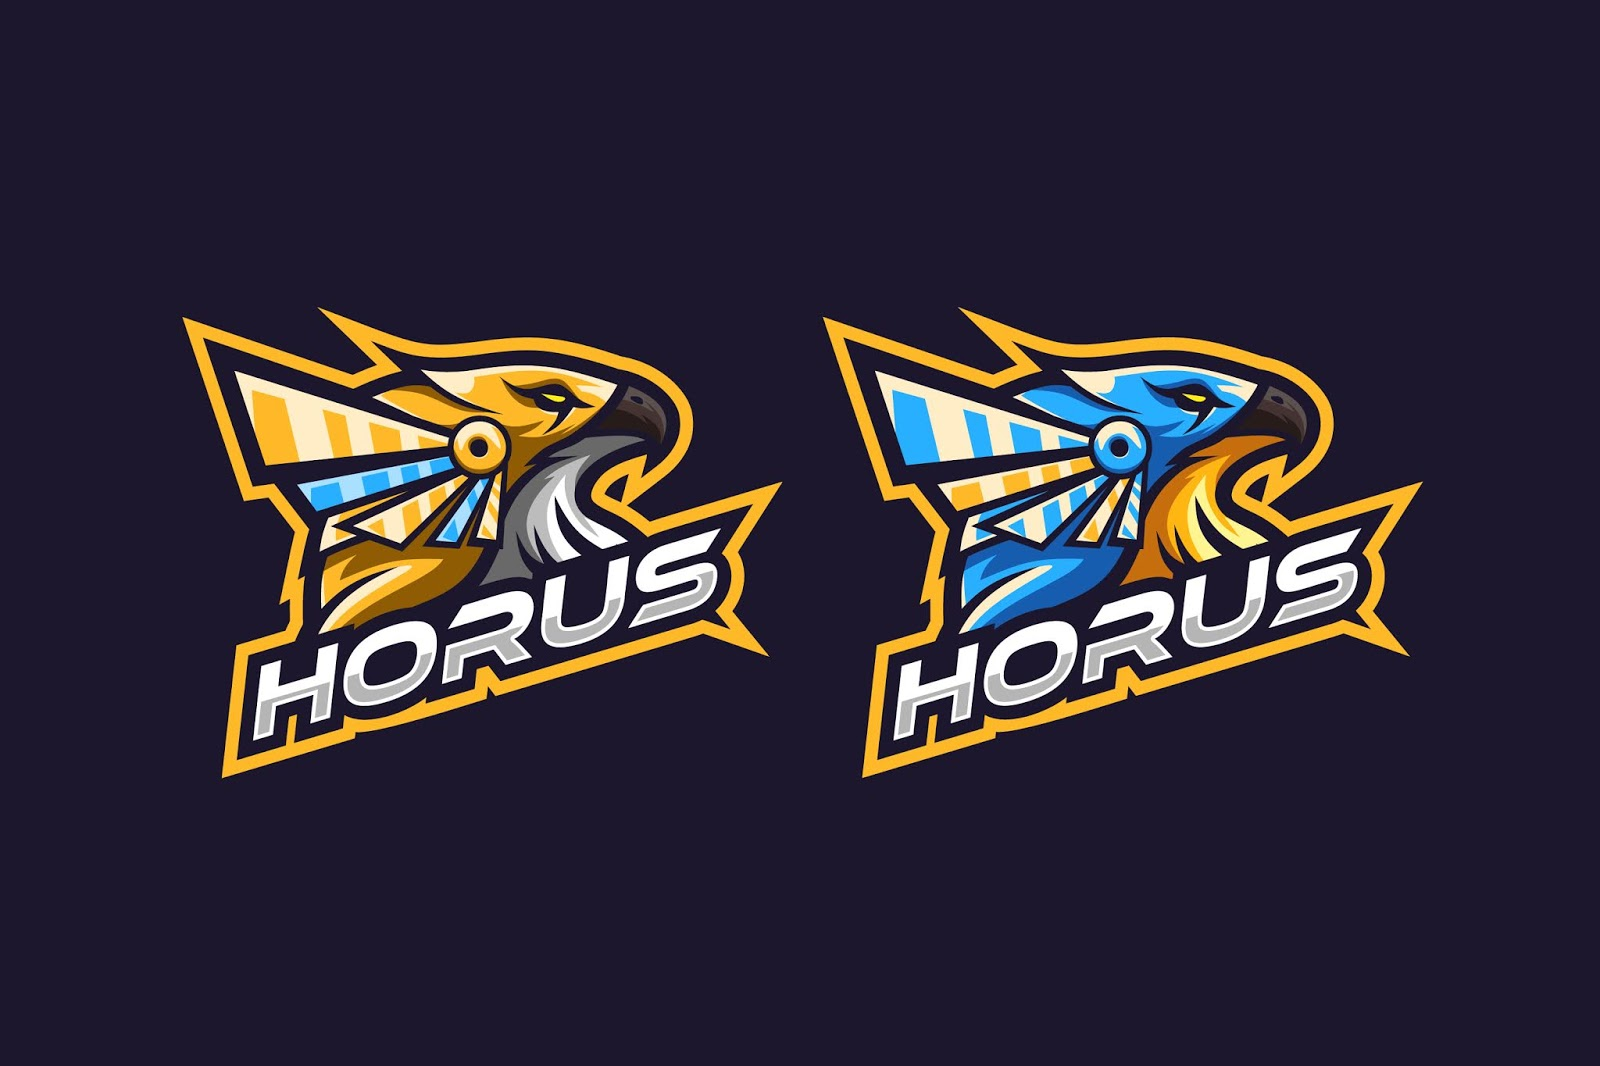 Awesome Horus Logo With Gold Blue Free Download Vector CDR, AI, EPS and PNG Formats